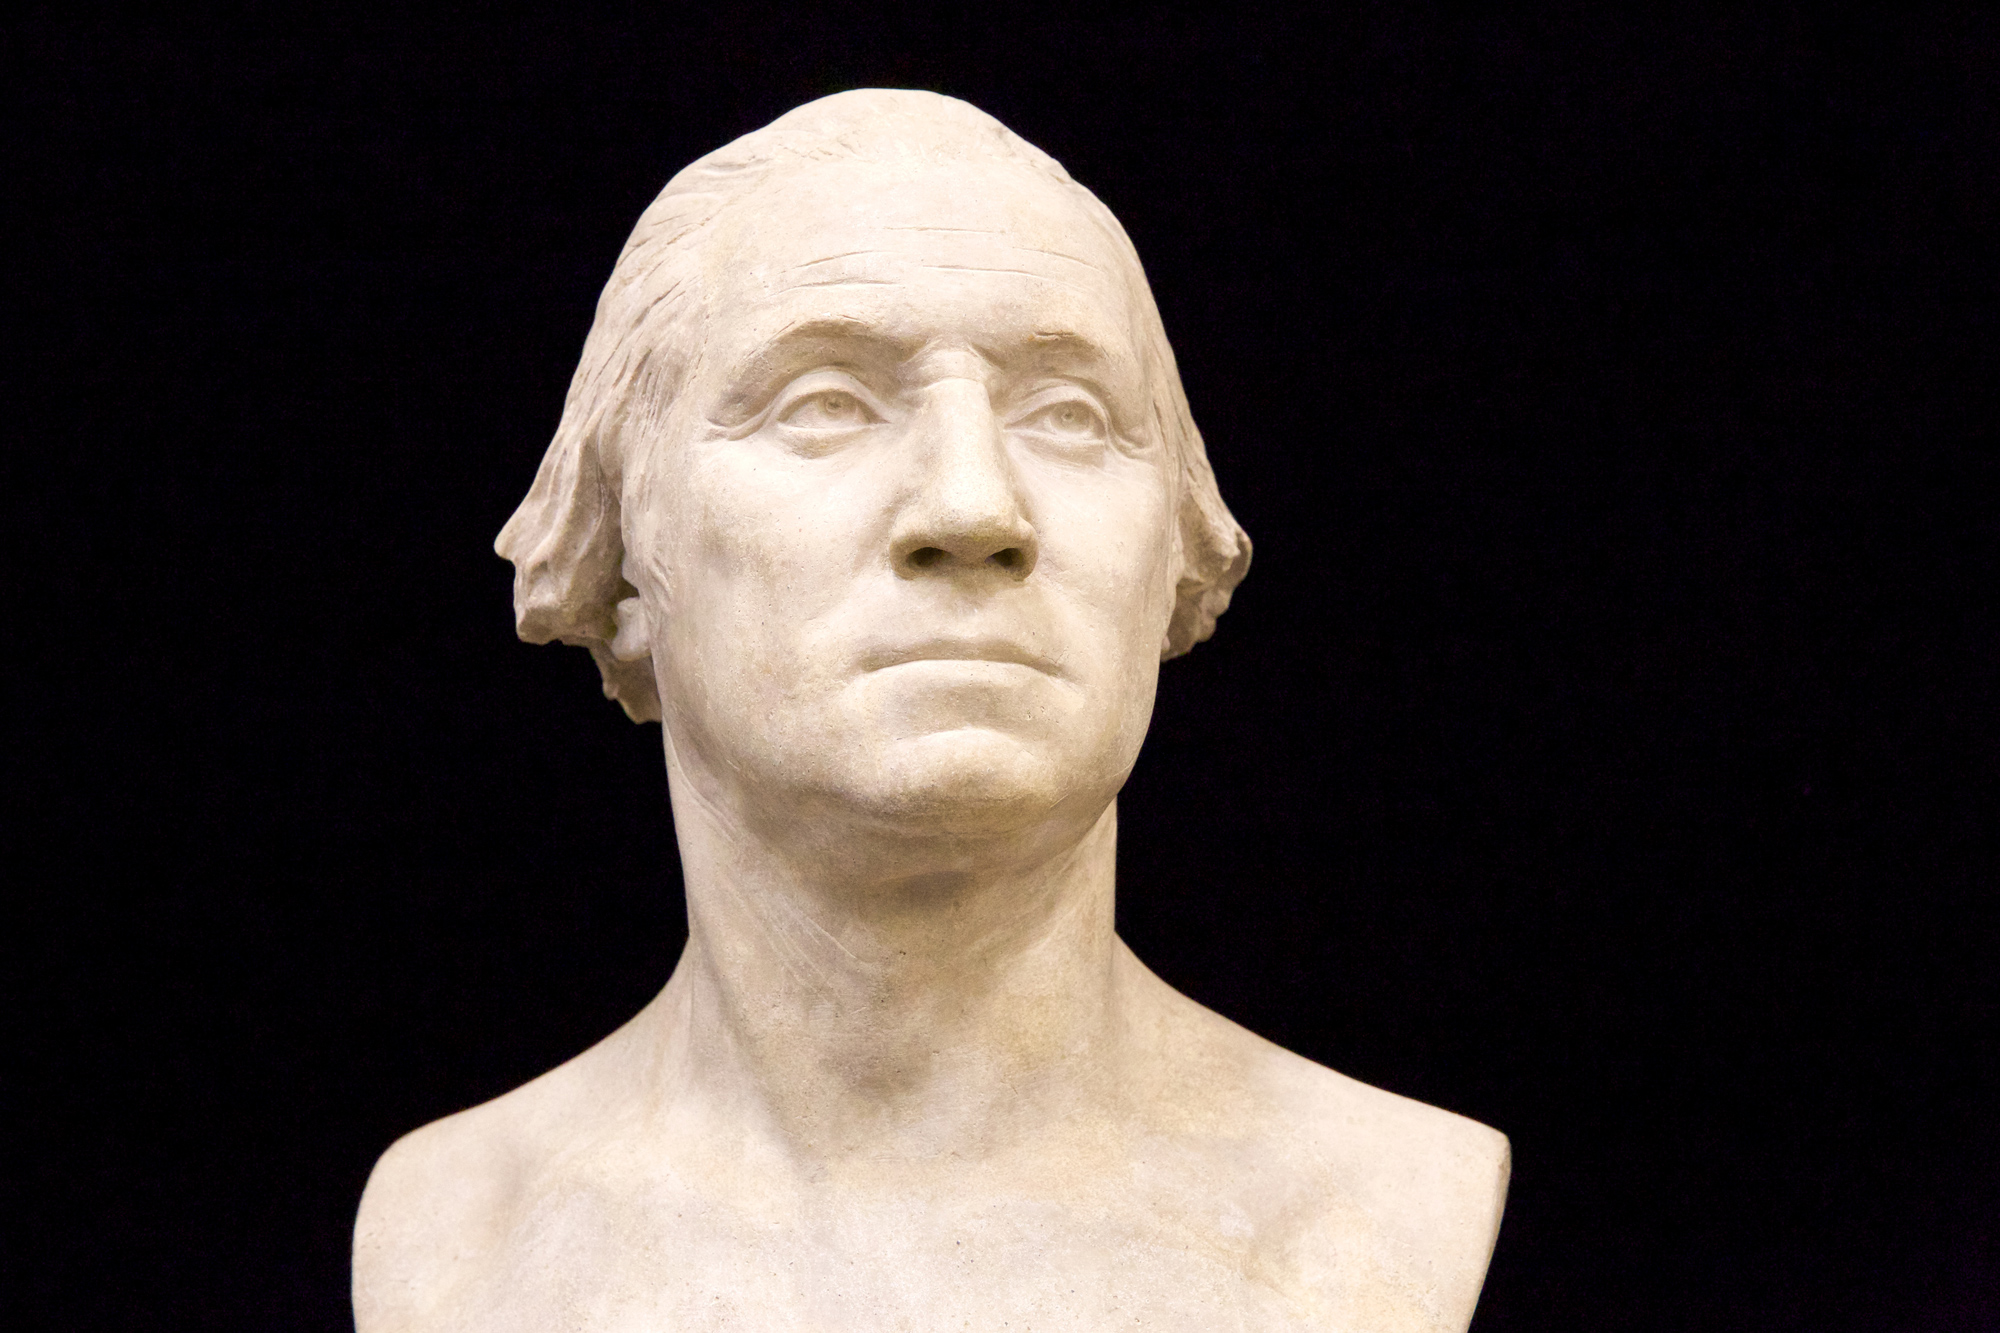 The Houdon Bust of George Washington